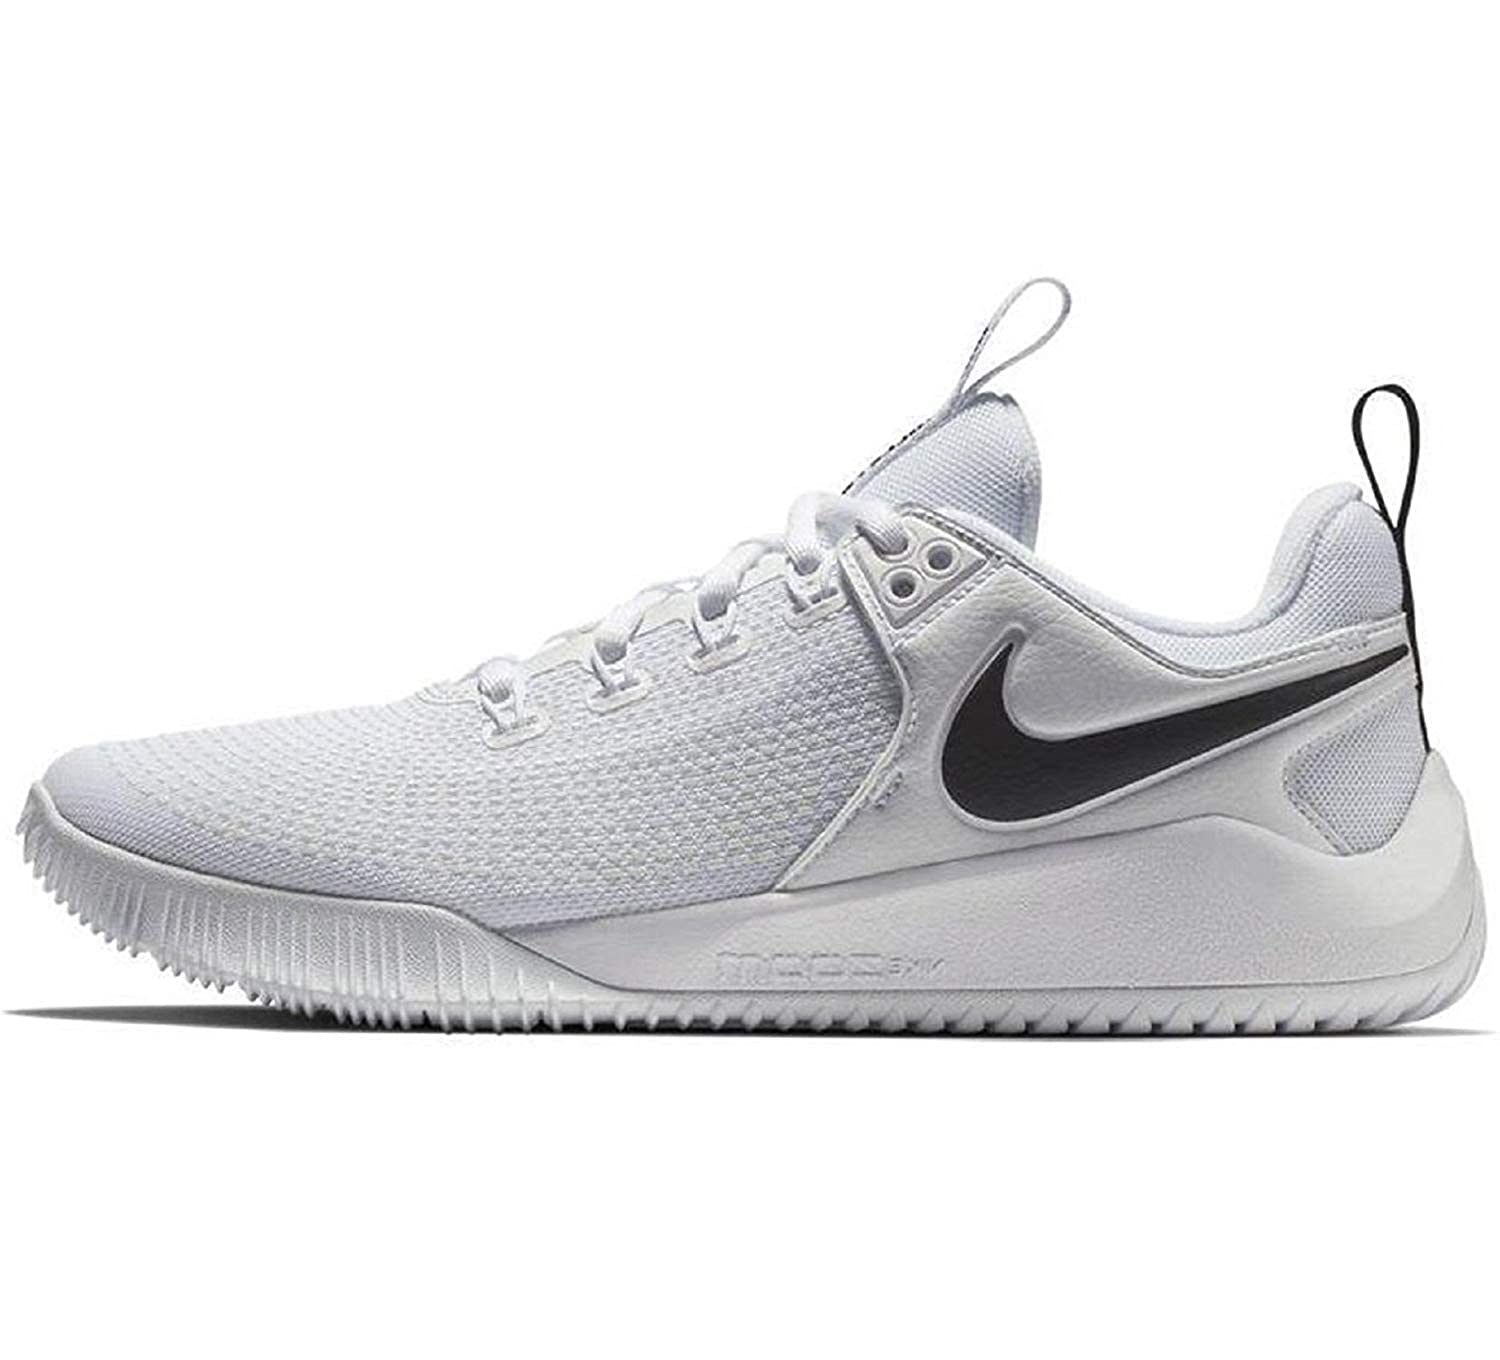 pretty nice 1d6b1 42b33 Amazon.com   Nike Womens Zoom Hyperace 2 Volleyball Shoe   Fashion Sneakers